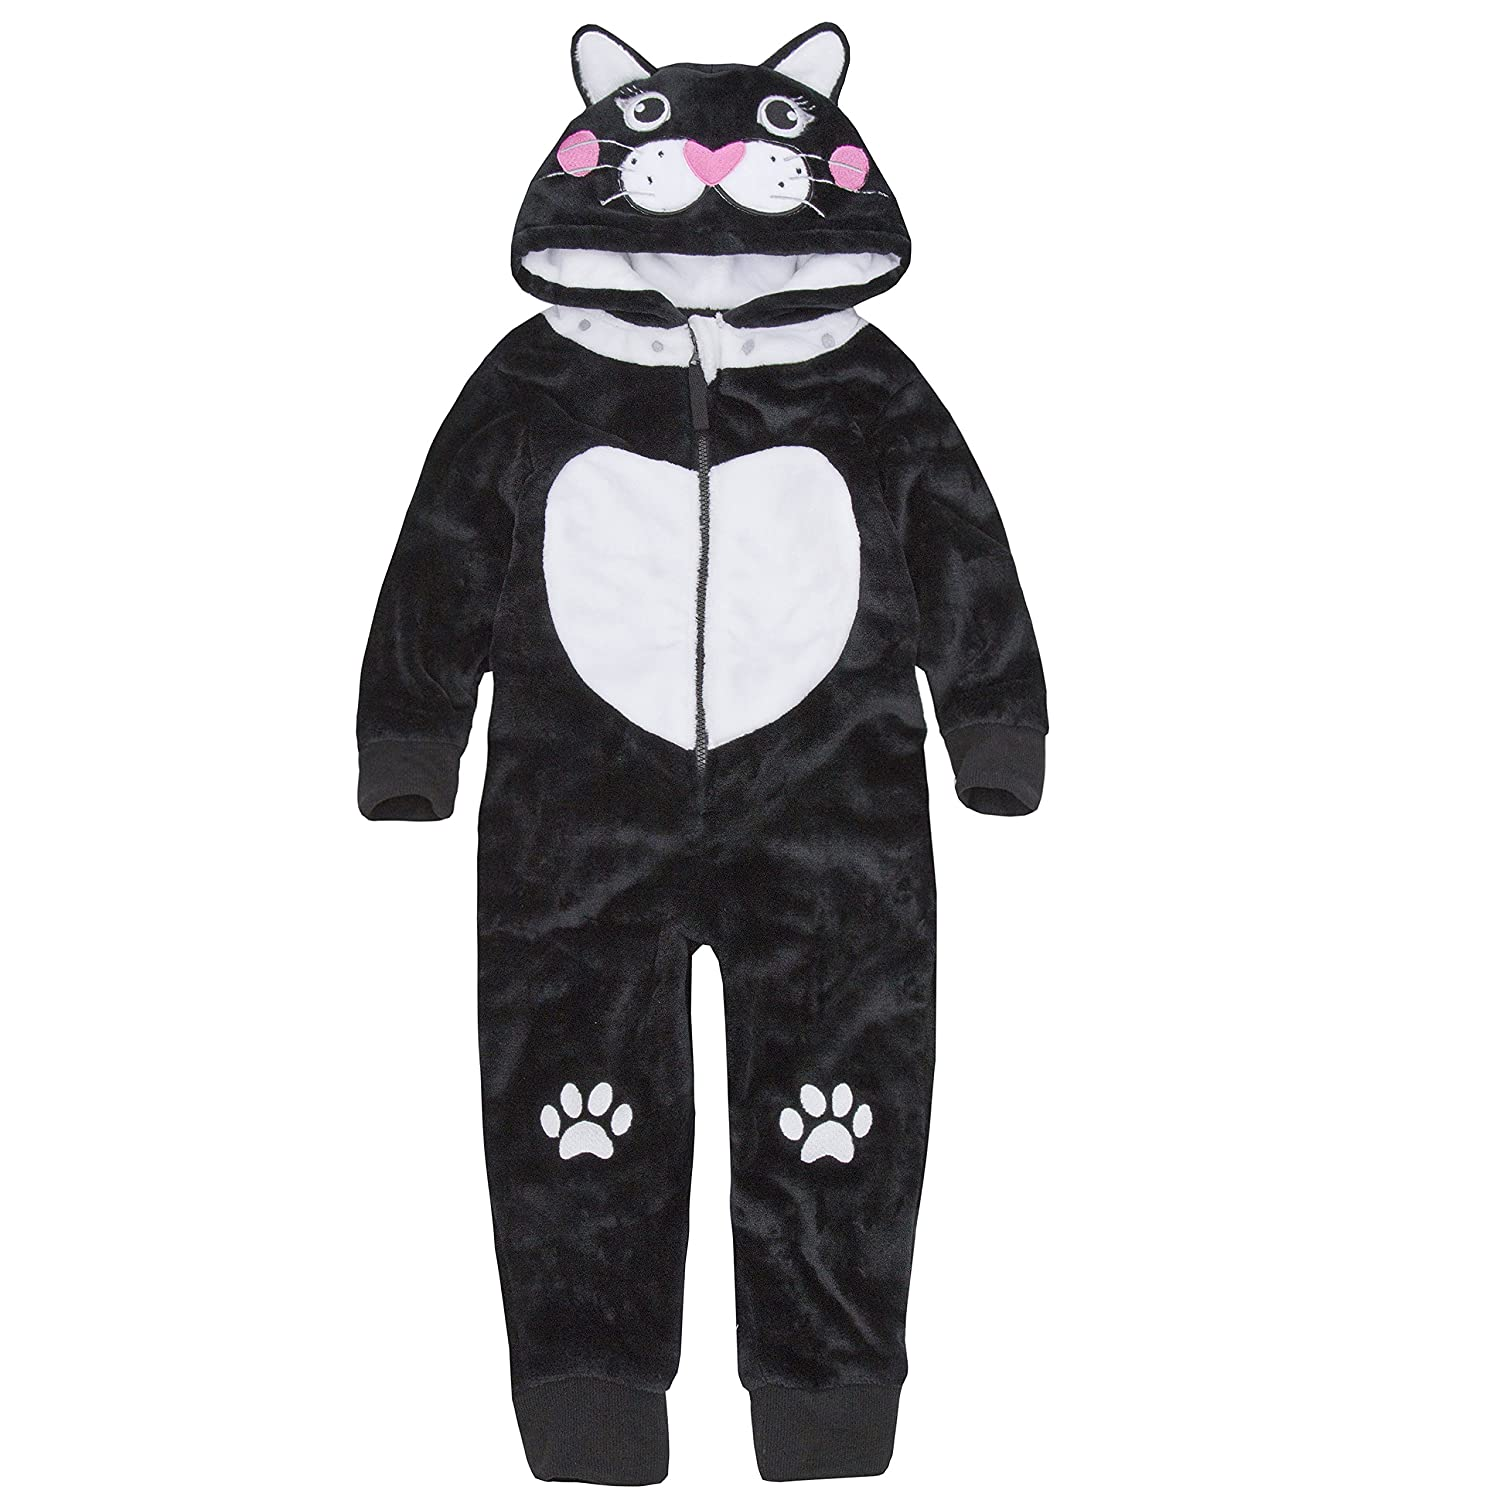 Girls All In One Novelty Sleepsuit In Gorgeous Black Cat Design Soft Luxurious Fleece 2-13 Years